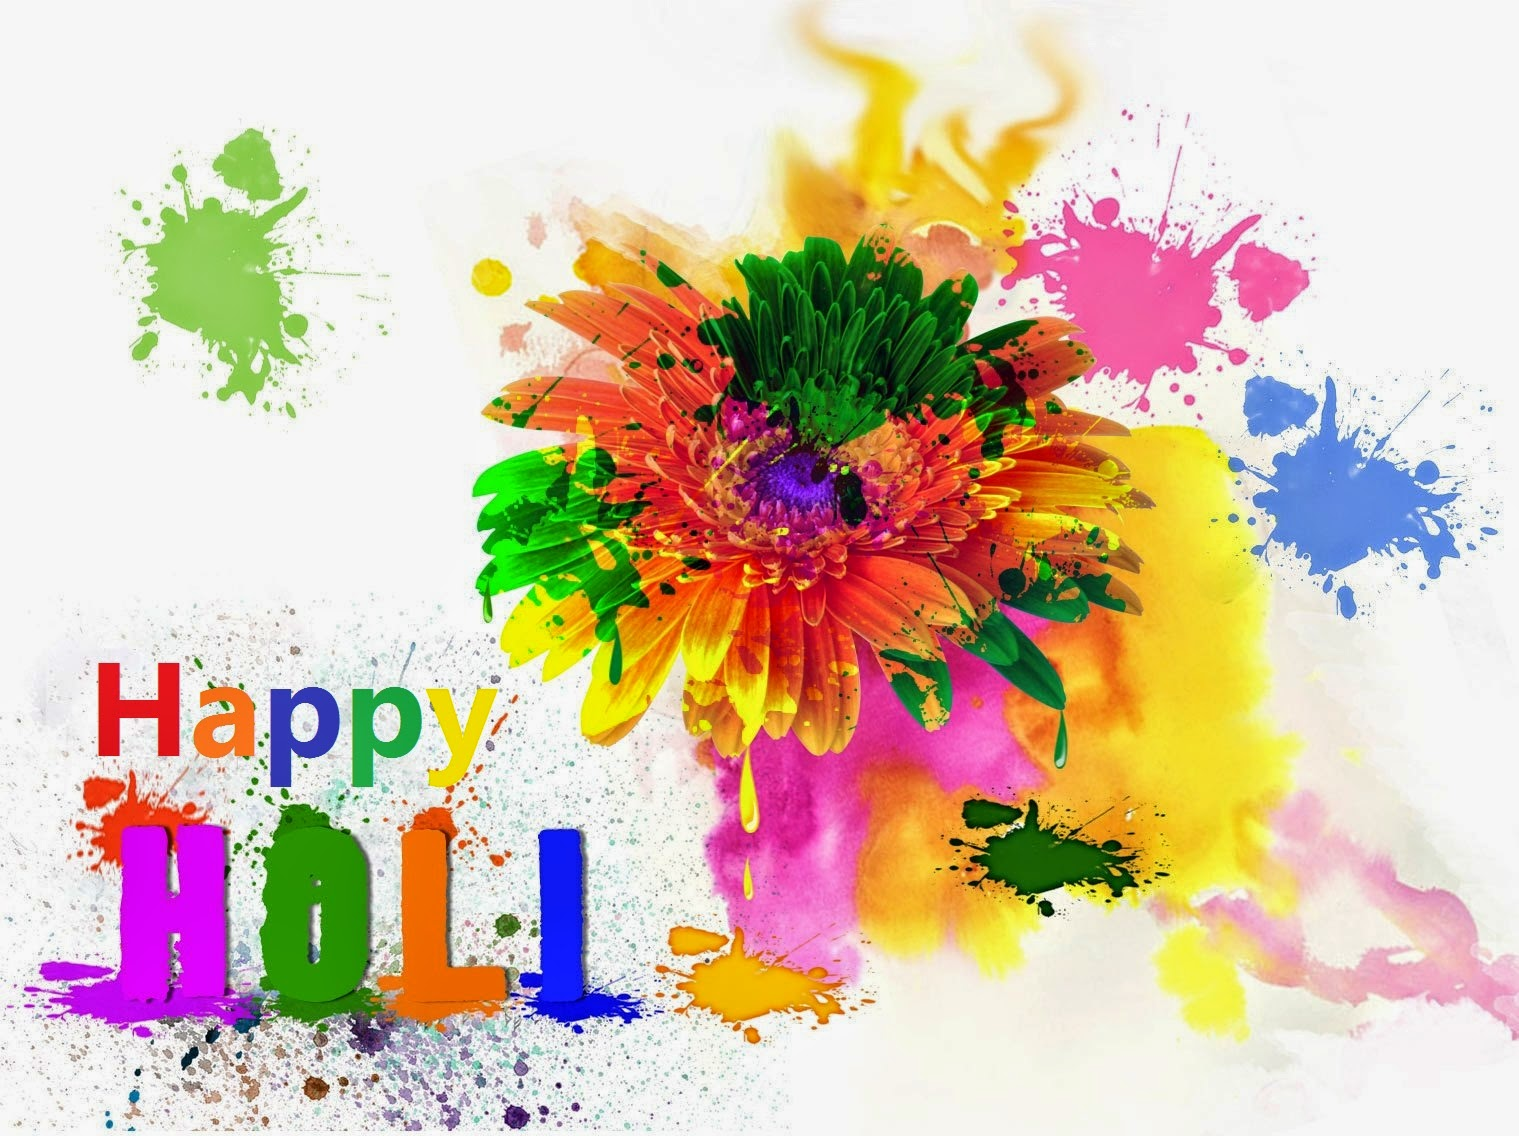 essay writing letter writing all types of sms holi sms  happy holi 2015 sms messages latest collection happy holi 2015 wishes